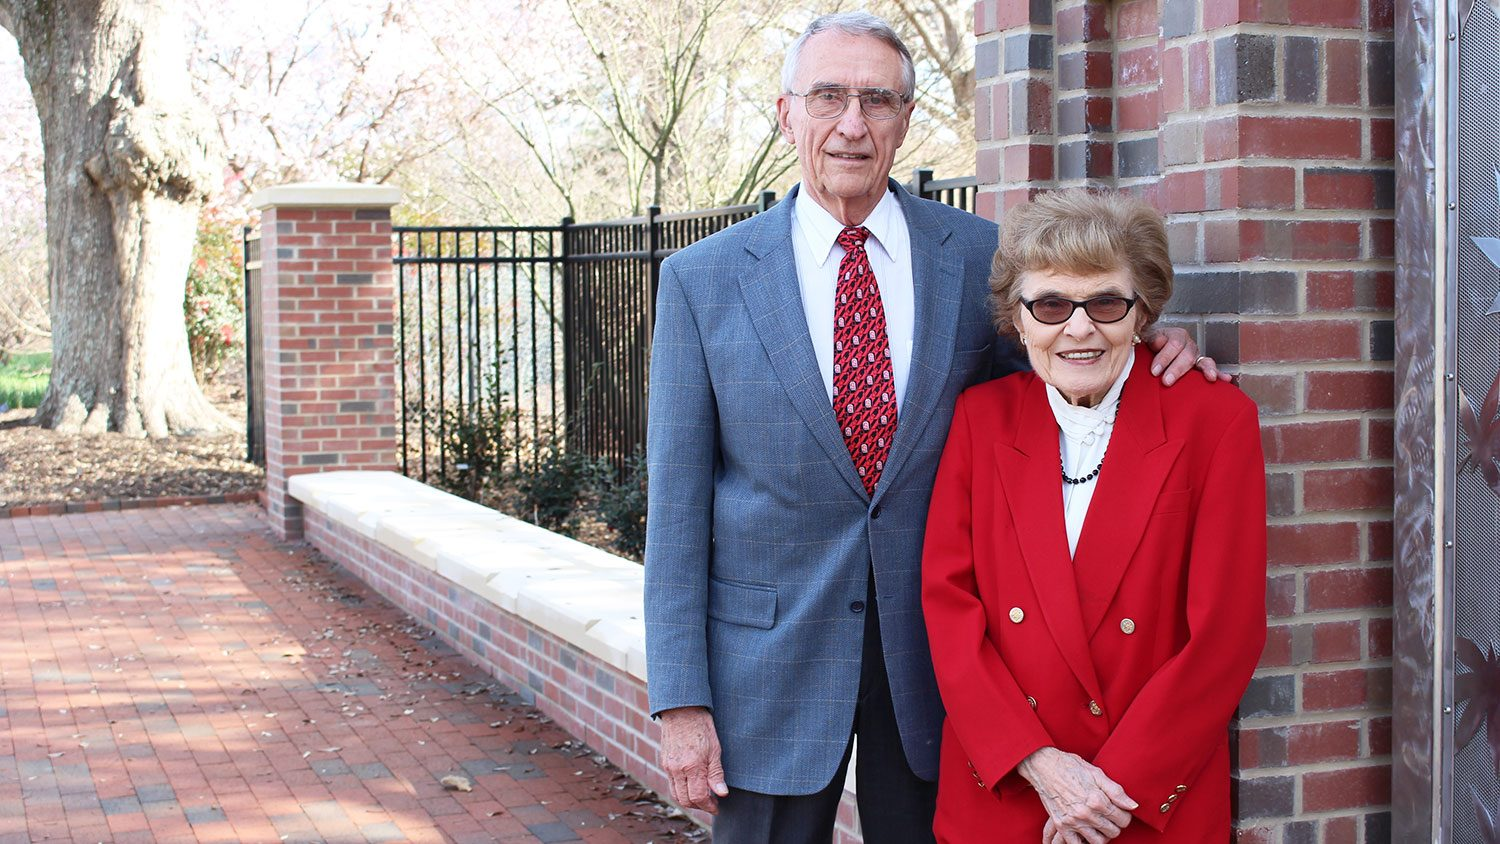 Drs Charles and Marilyn Stuber